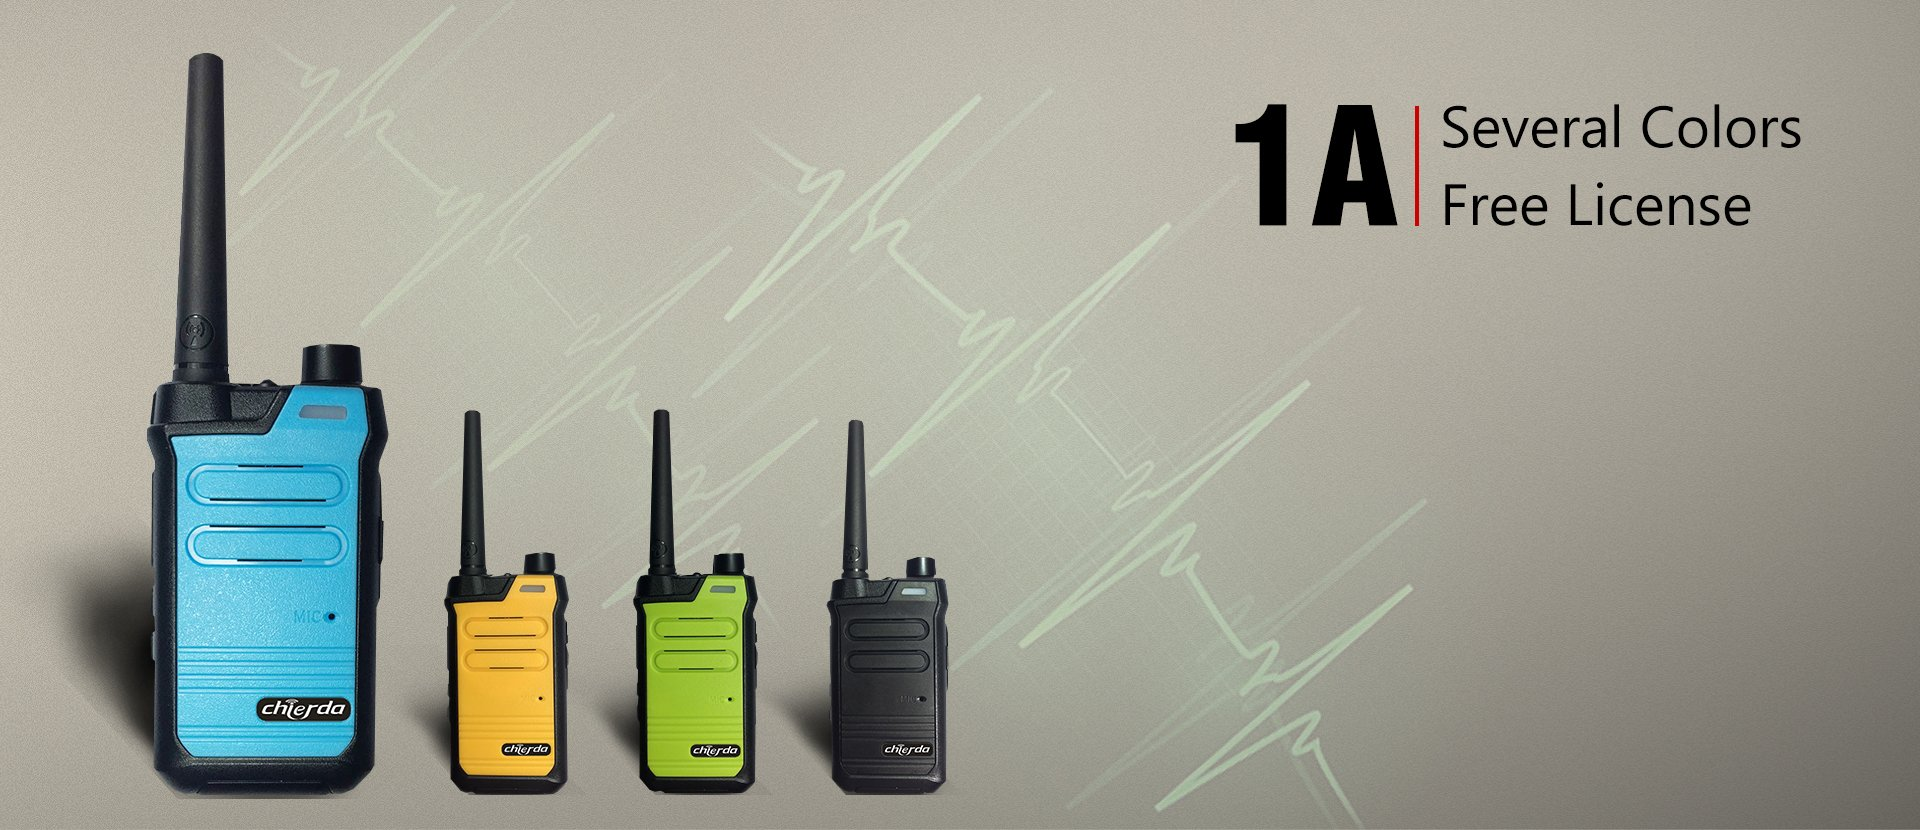 Walkie talkie, two way radio, Mobile car radio, Repeater, Dmr radio